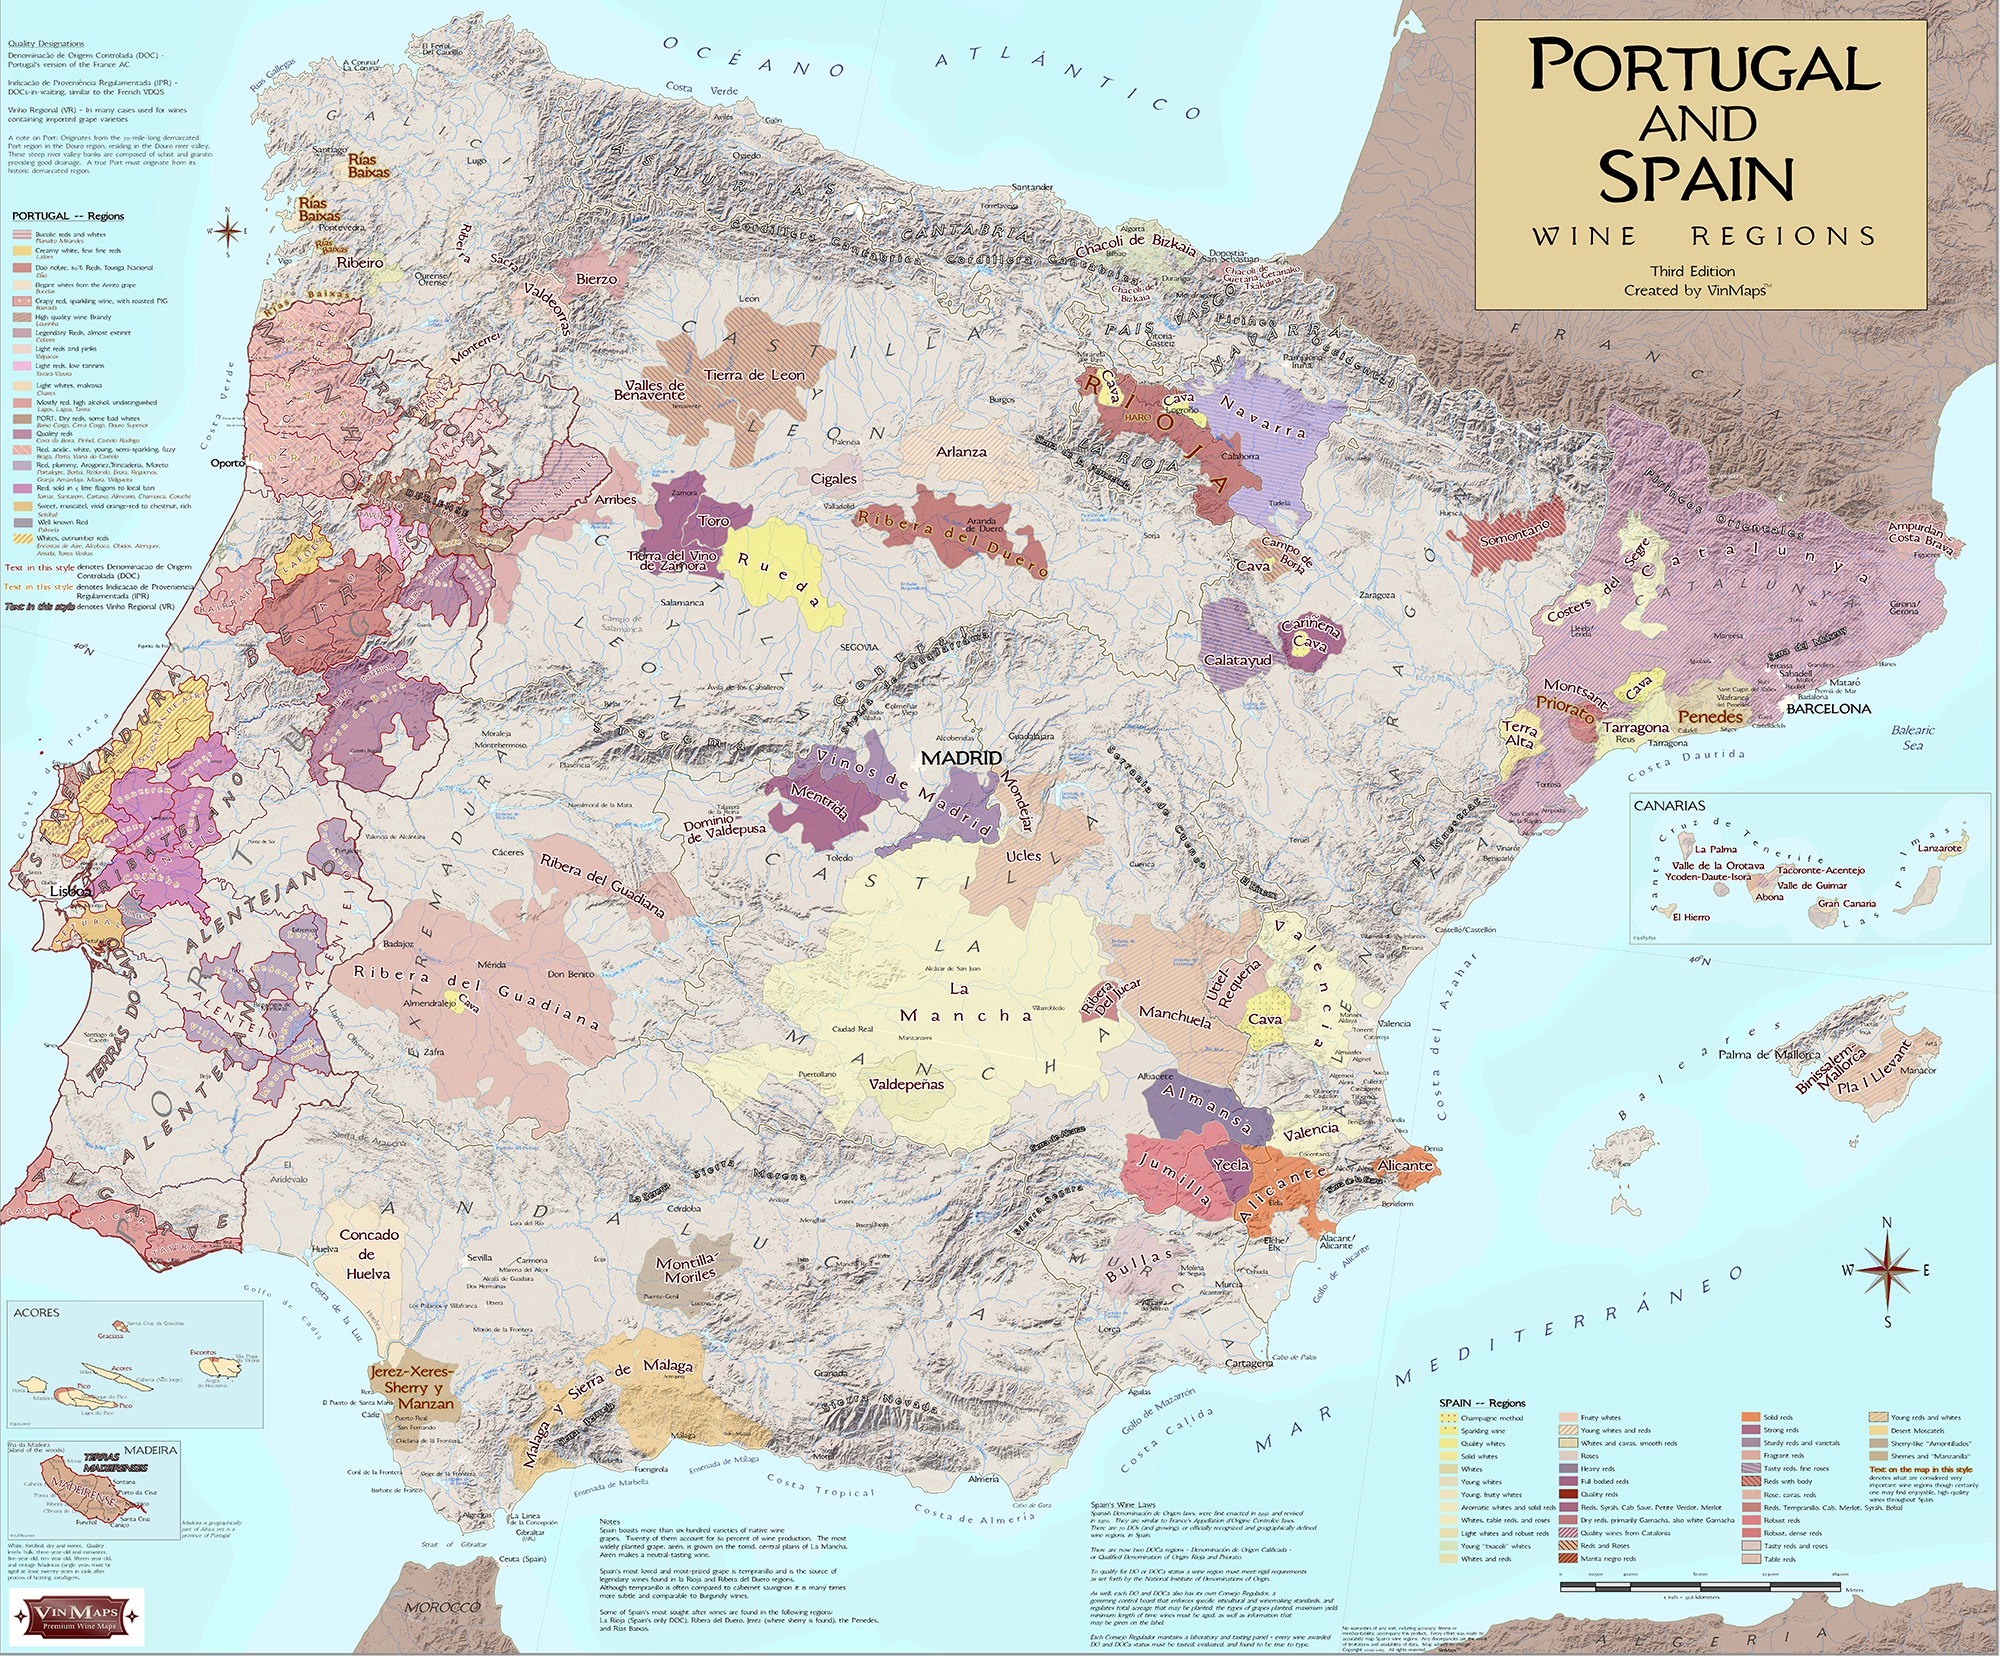 Wine Regions of Portugal & Spain